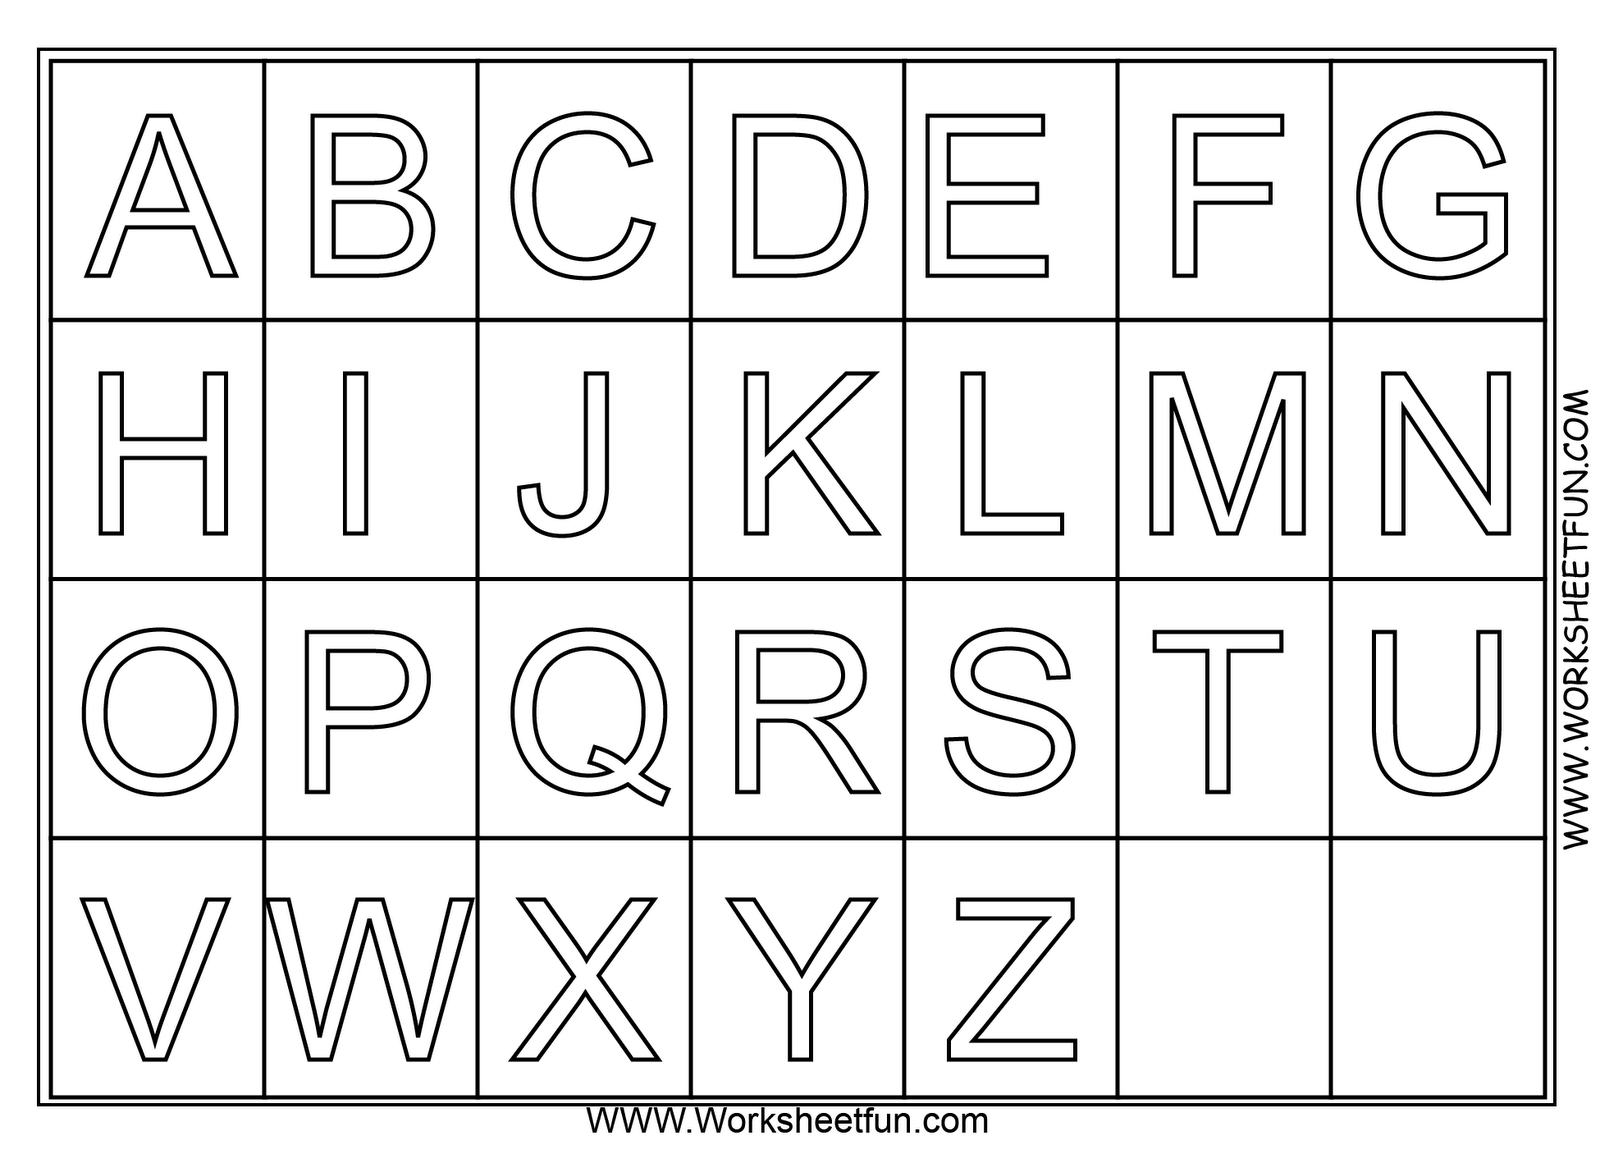 A z alphabet coloring pages download and print for free | pre k ...